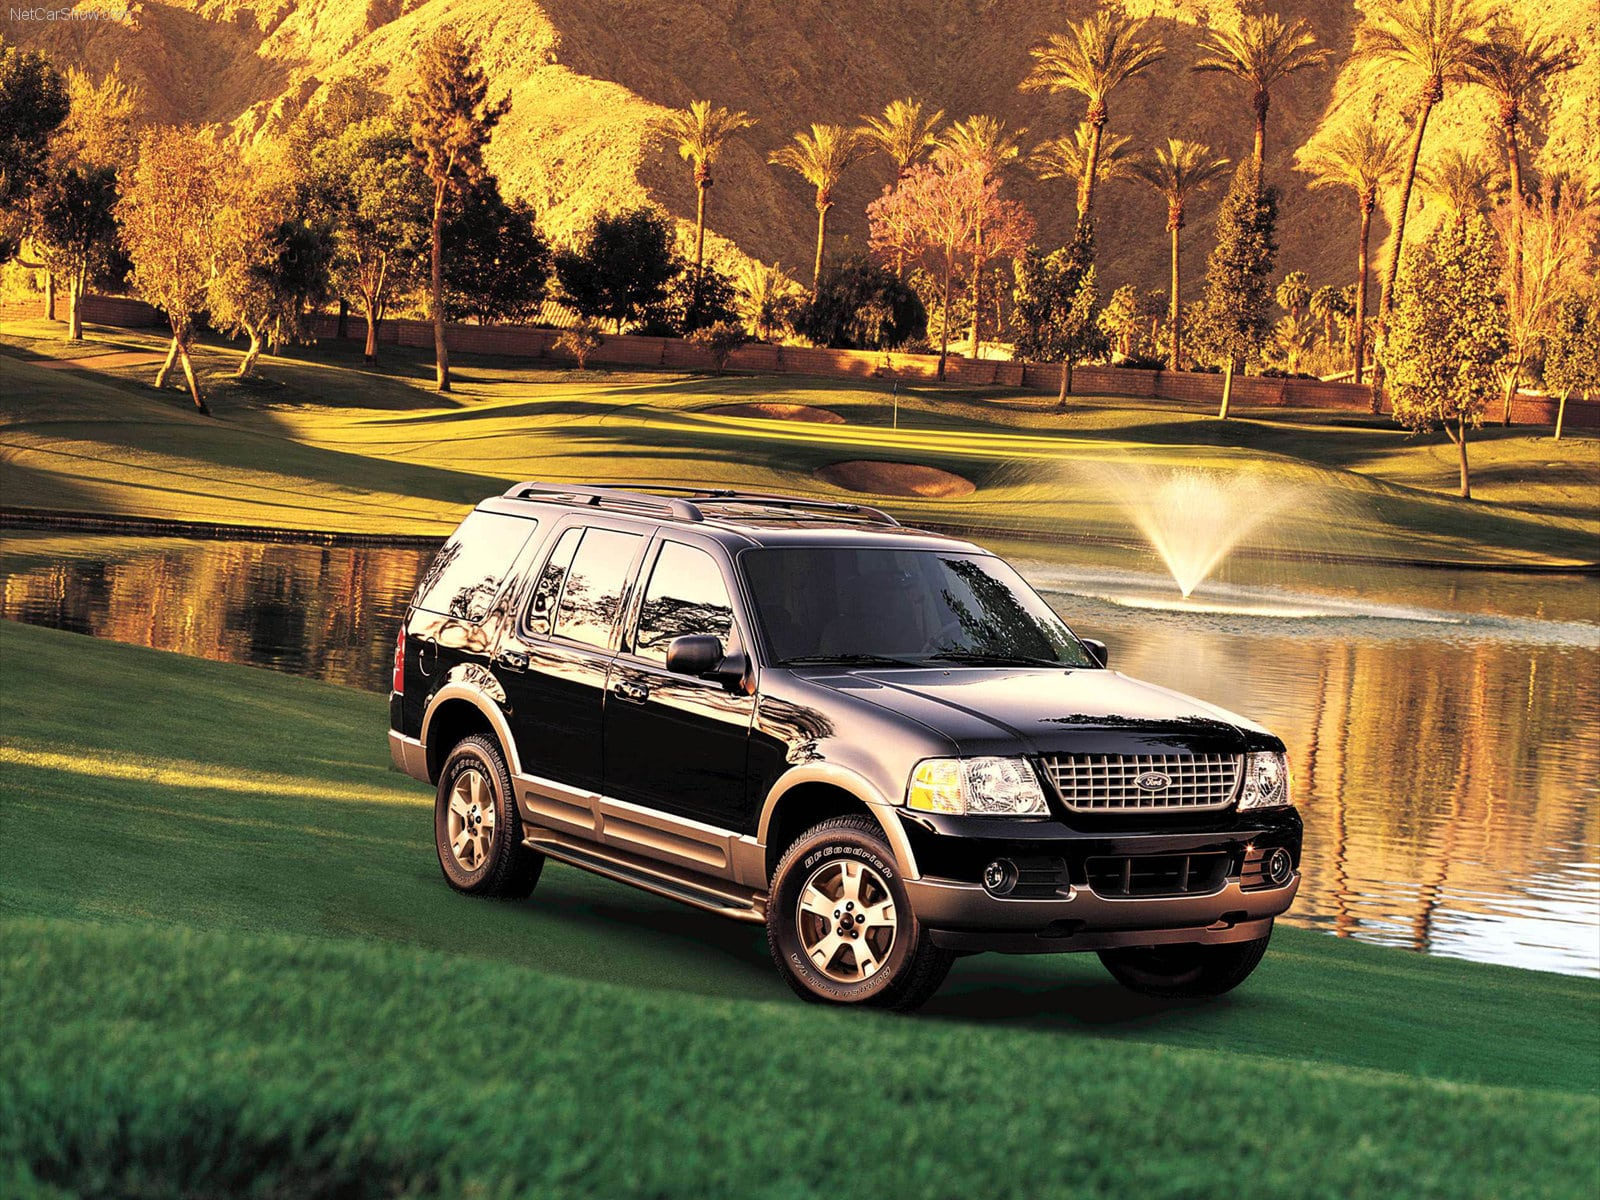 1600x1200 - Ford Explorer Wallpapers 29